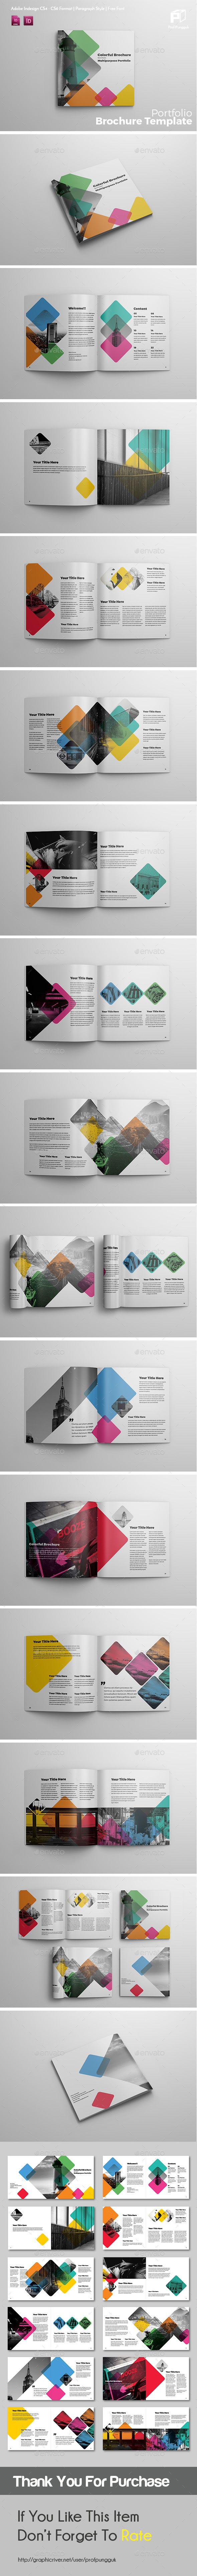 Square Brochure Vol.4 — InDesign INDD #square #products • Download ➝ https://graphicriver.net/item/square-brochure-vol4/19240281?ref=pxcr